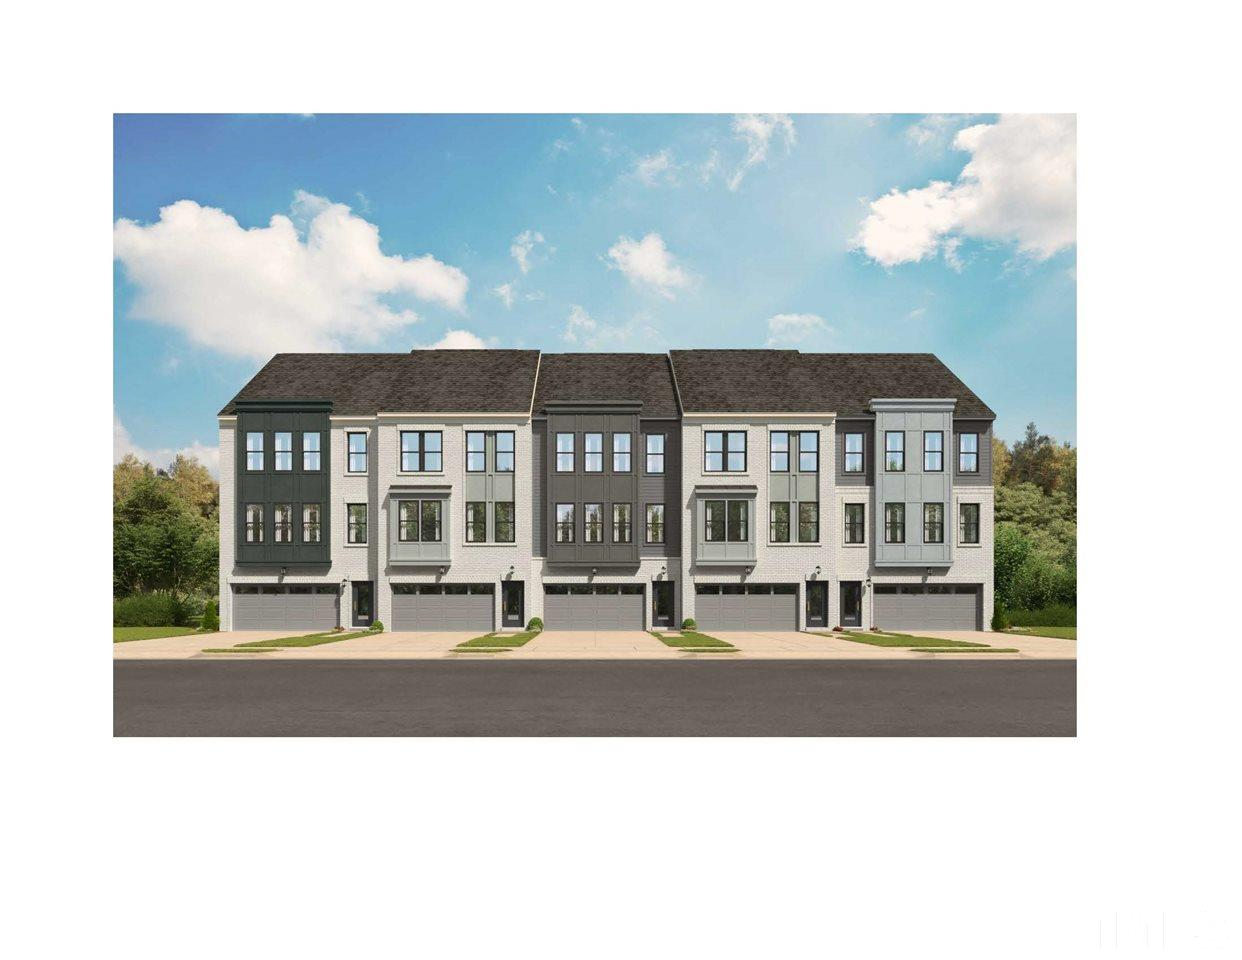 Shown on right side of the building in this rendering